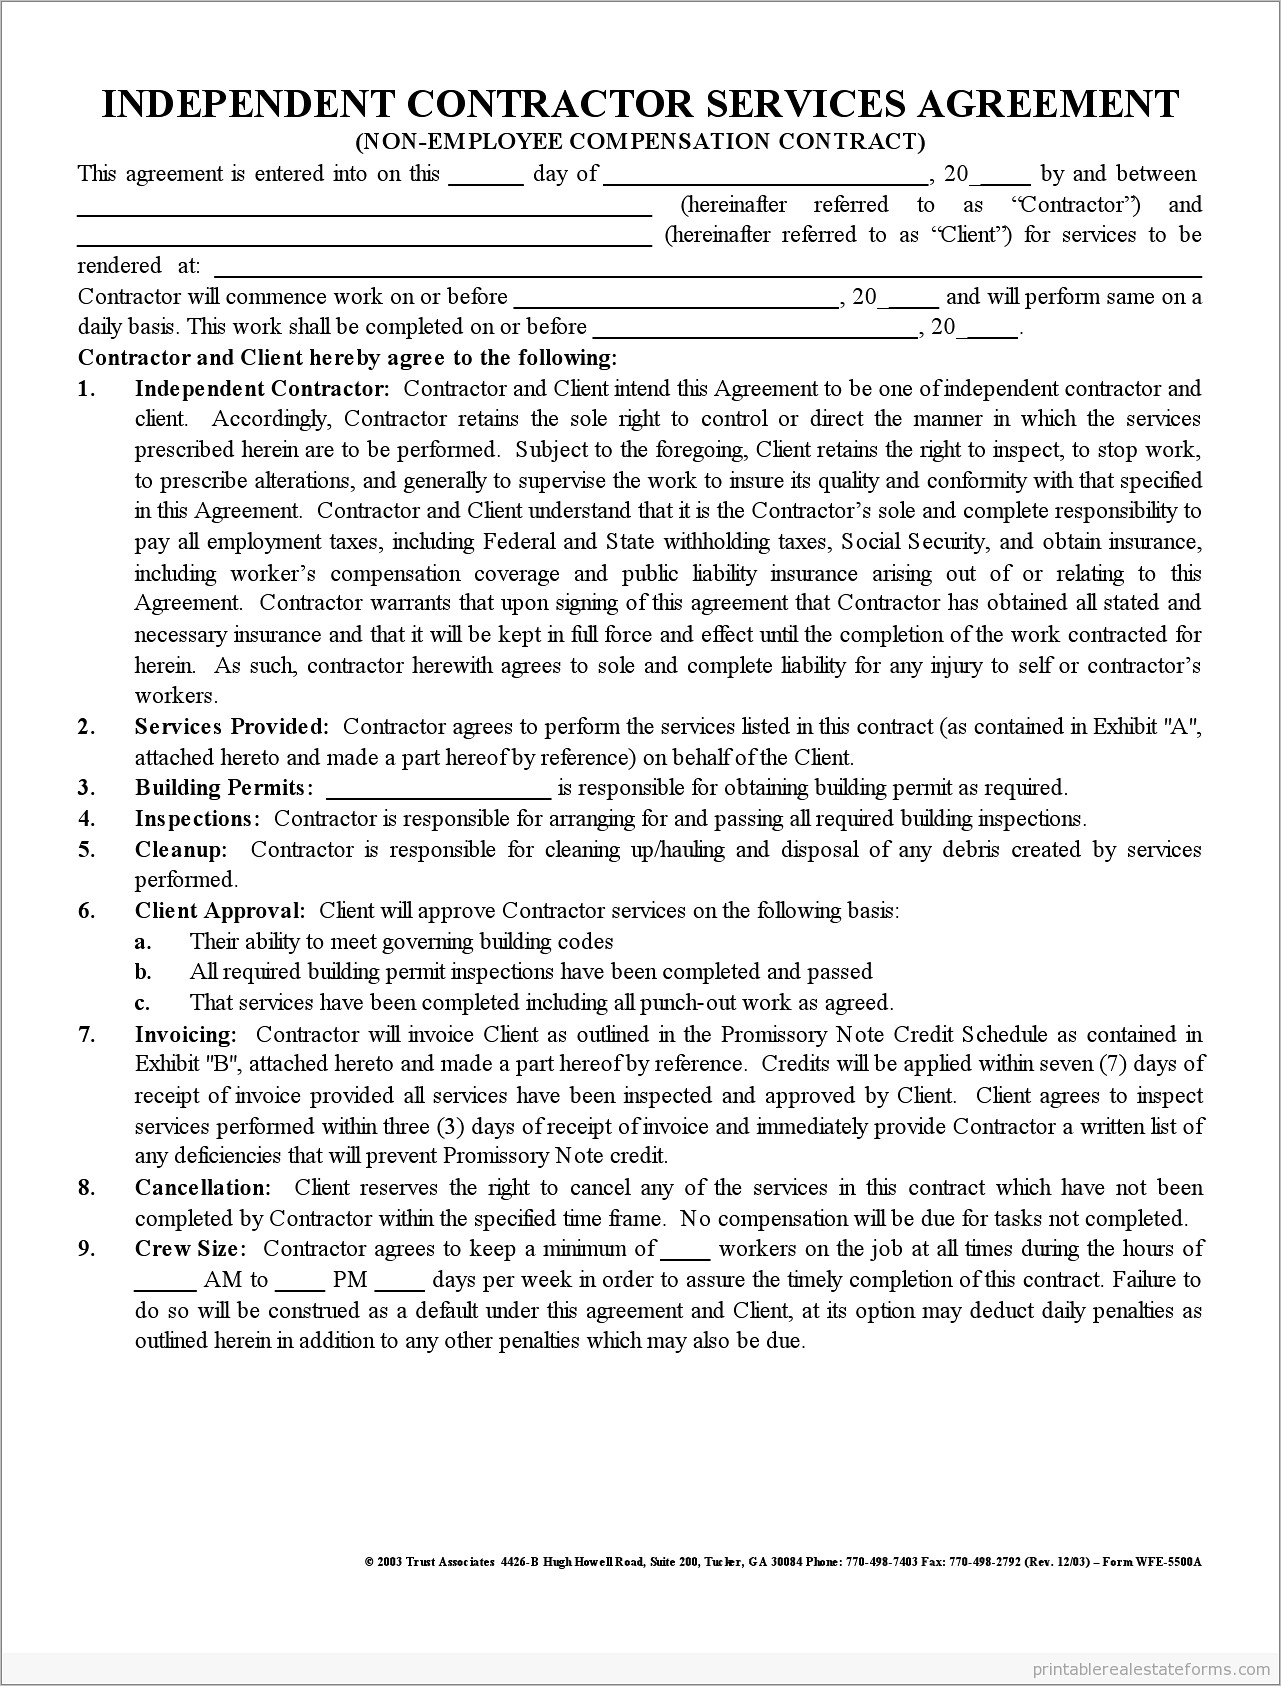 Independent Contractor Agreement Template Australia Free